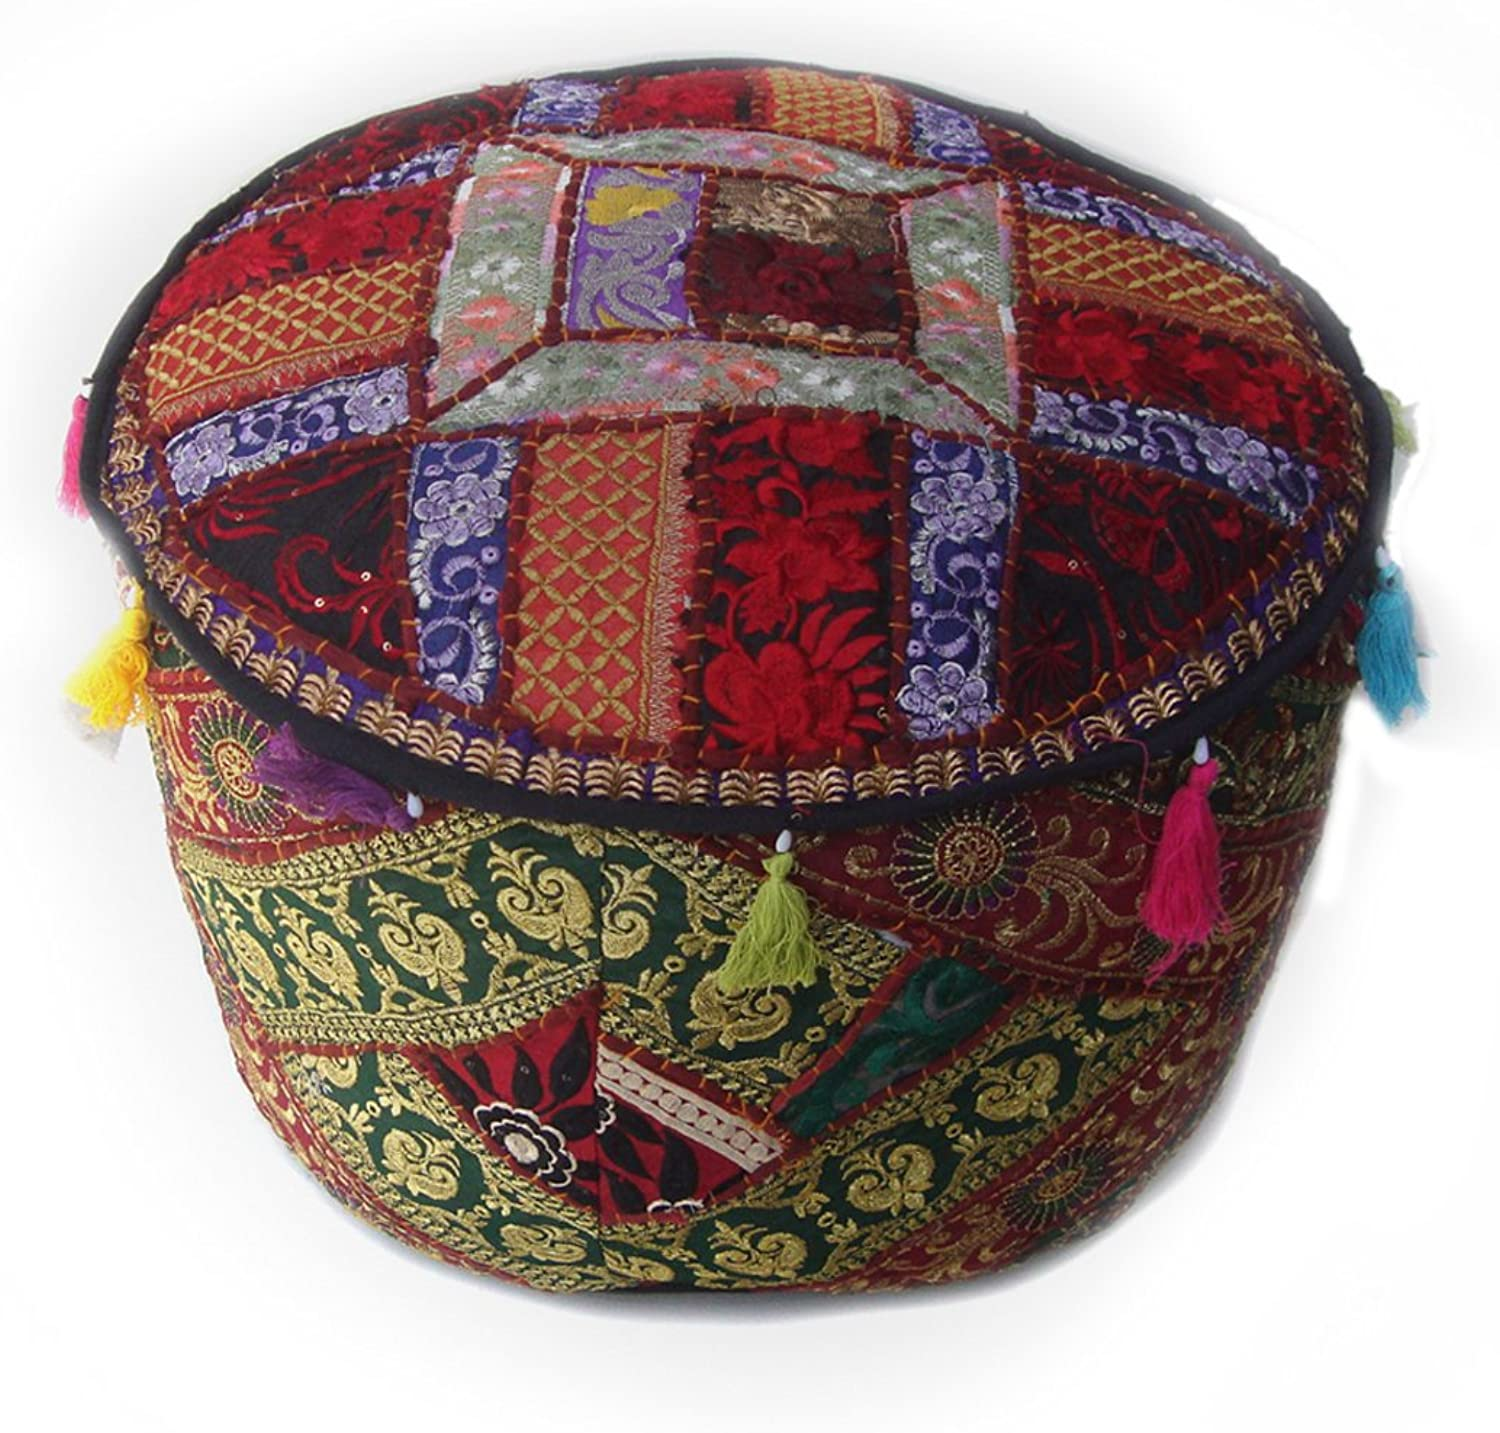 Kutch Assorted Recycled Polycotton Embroidered Patchwork Empty Pouf Cover